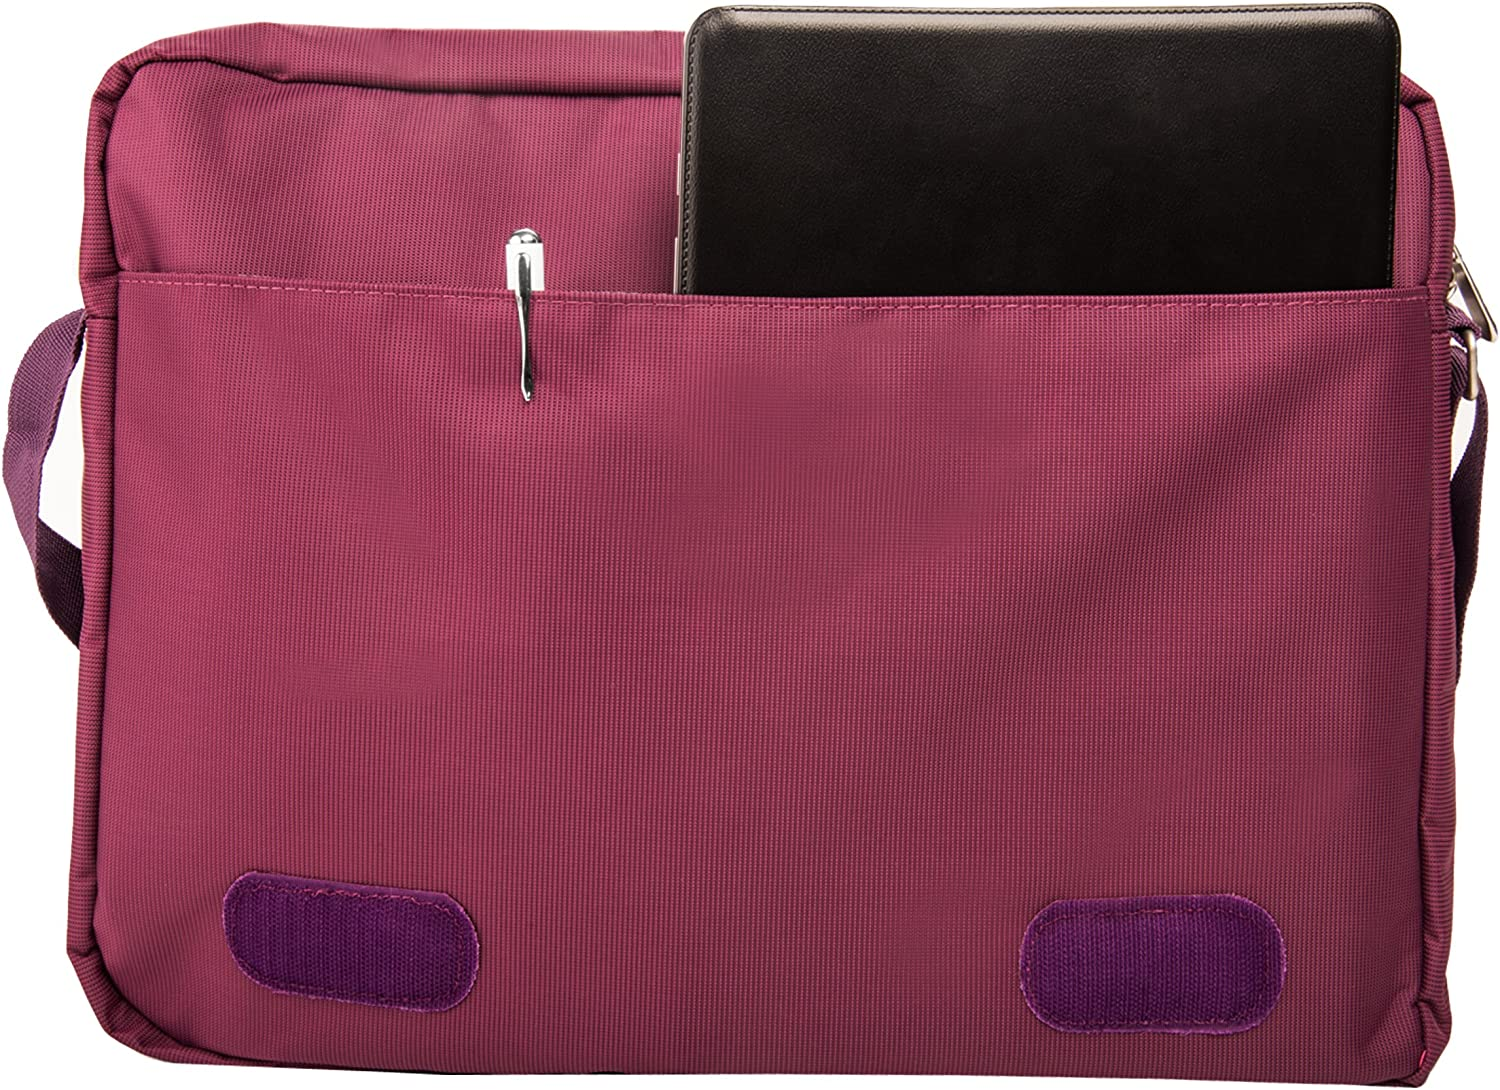 Inspiron 13 Italey Purple Crossbody Pack for Dell Notebook Chromebook and Wireless USB Mouse and 7 Port USB HUB 6 foot Cable 14 LatituVostro 14 de 13 11.6 inch 15.6 inch XPS 15 15 Alienware